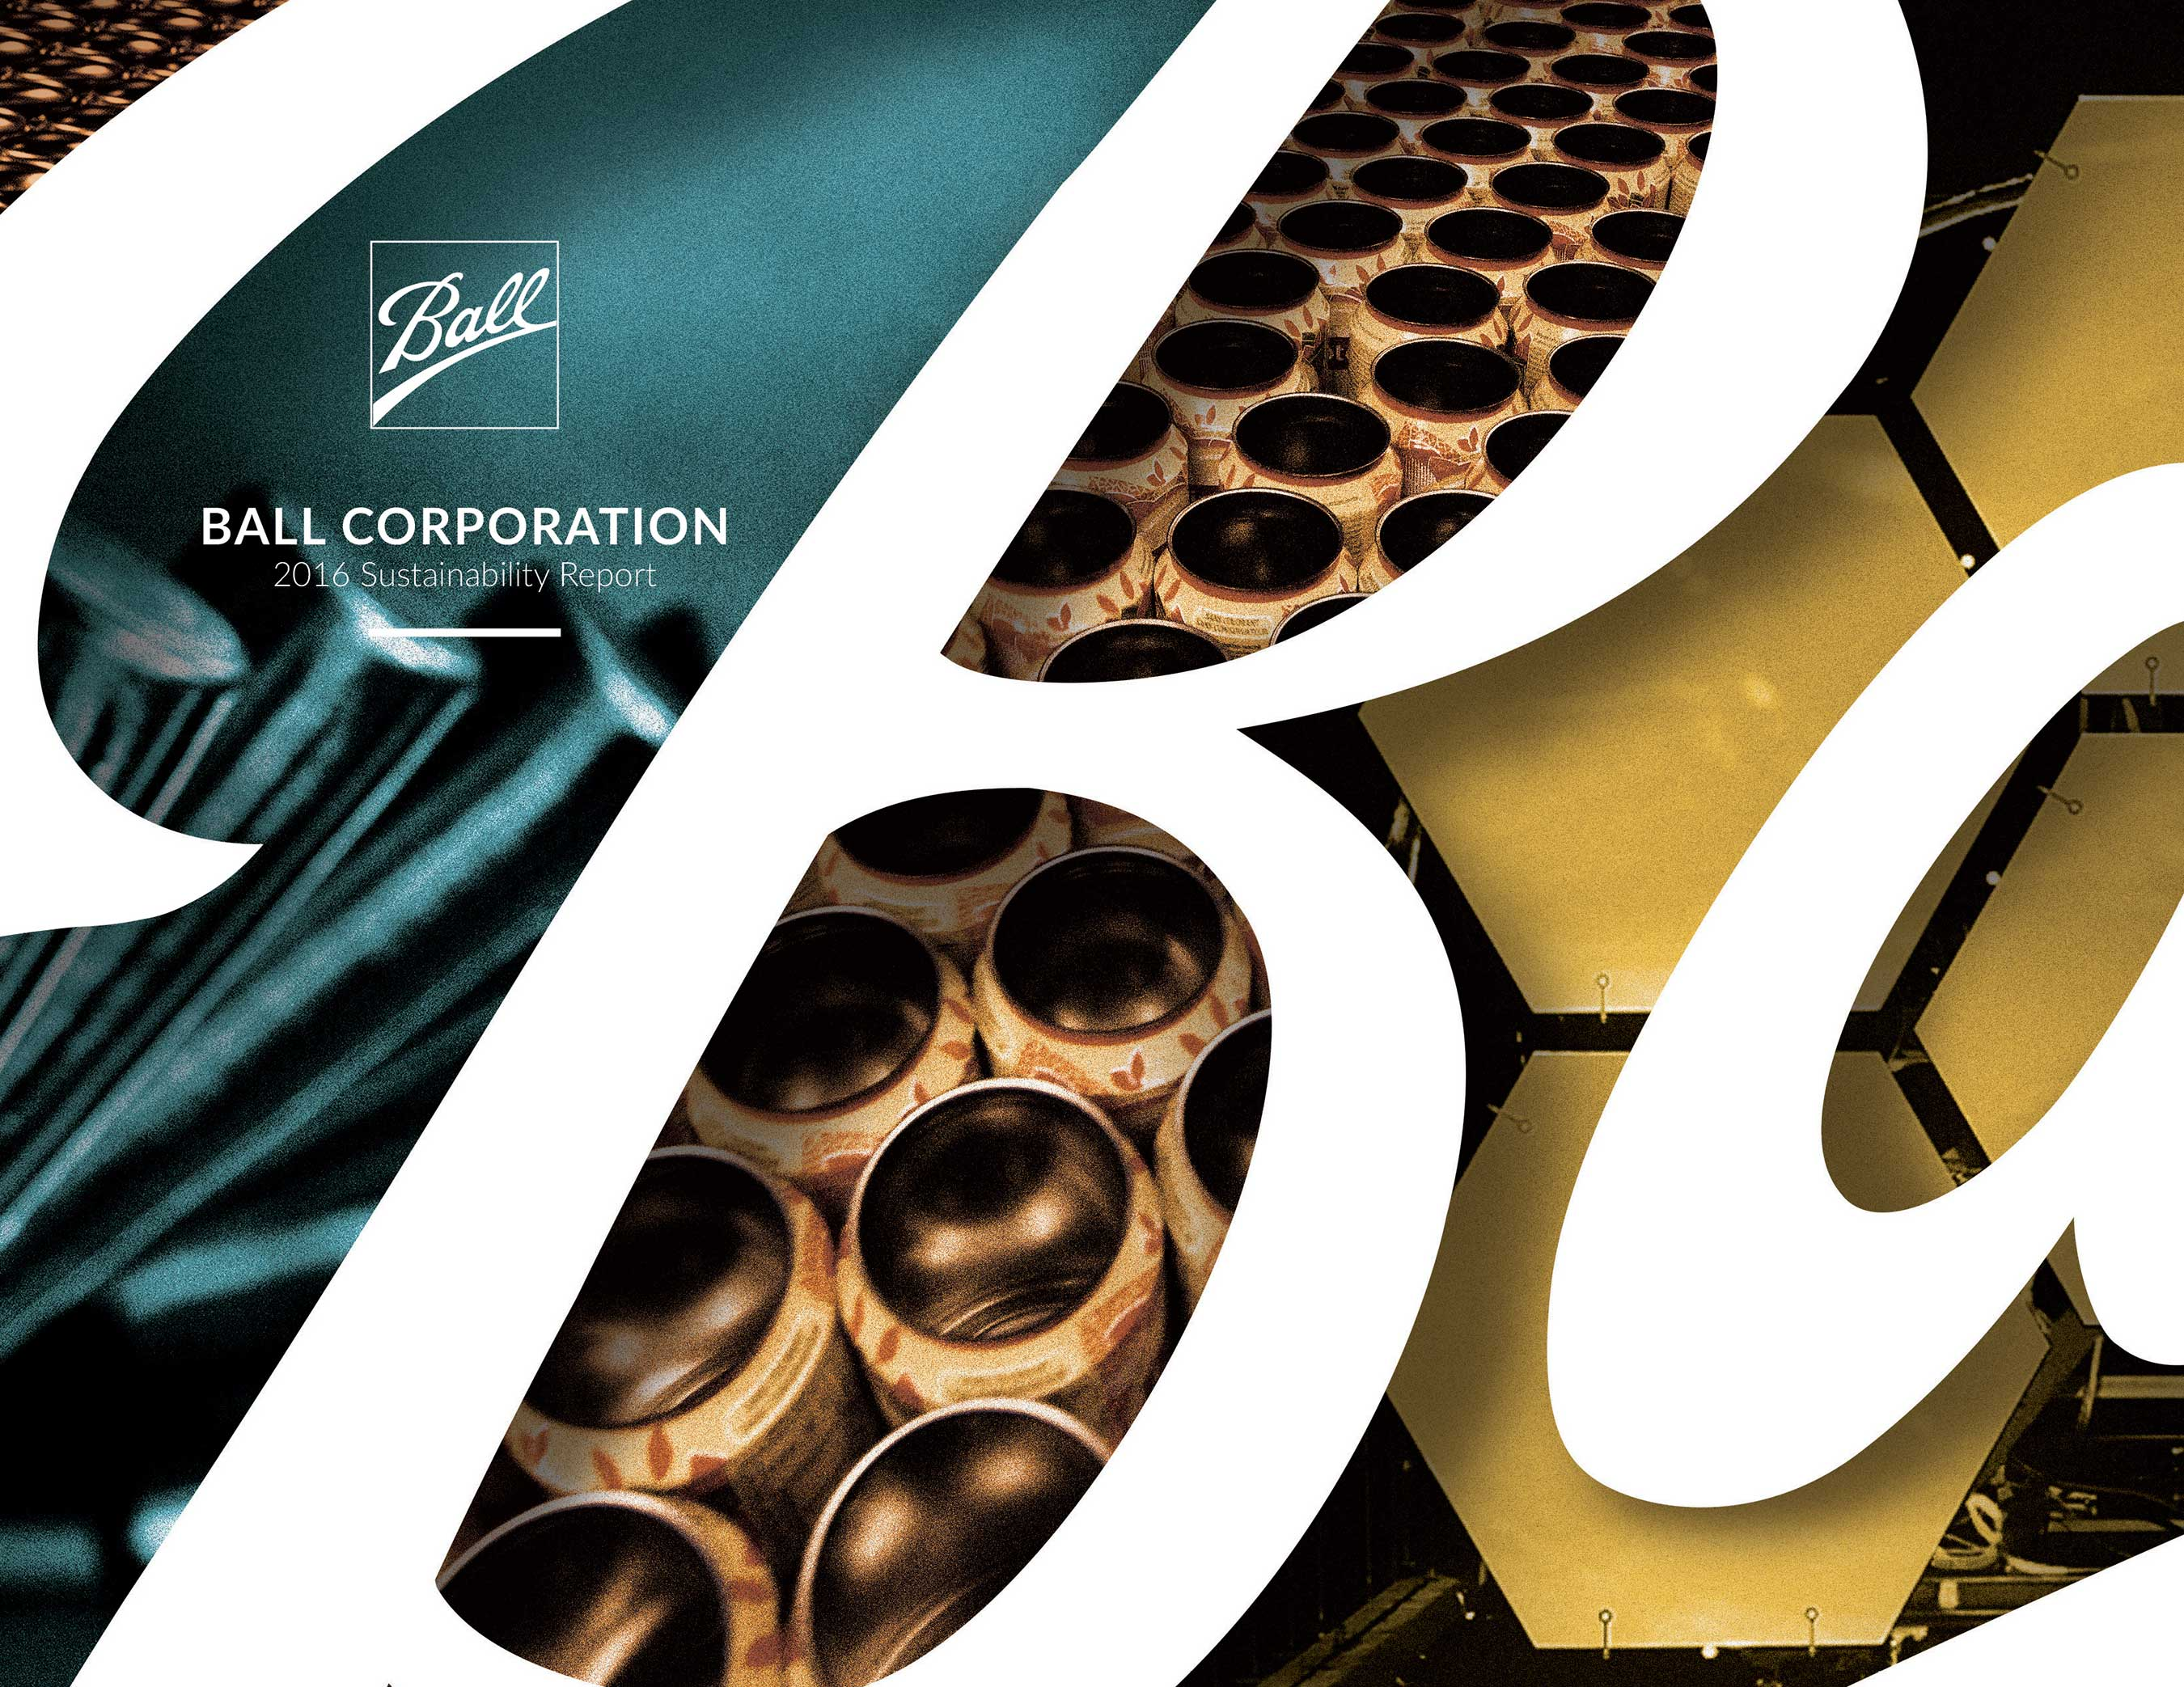 Ball Corporation launched its fifth biennial sustainability report, including 10 new ambitious goals to be achieved by 2020.